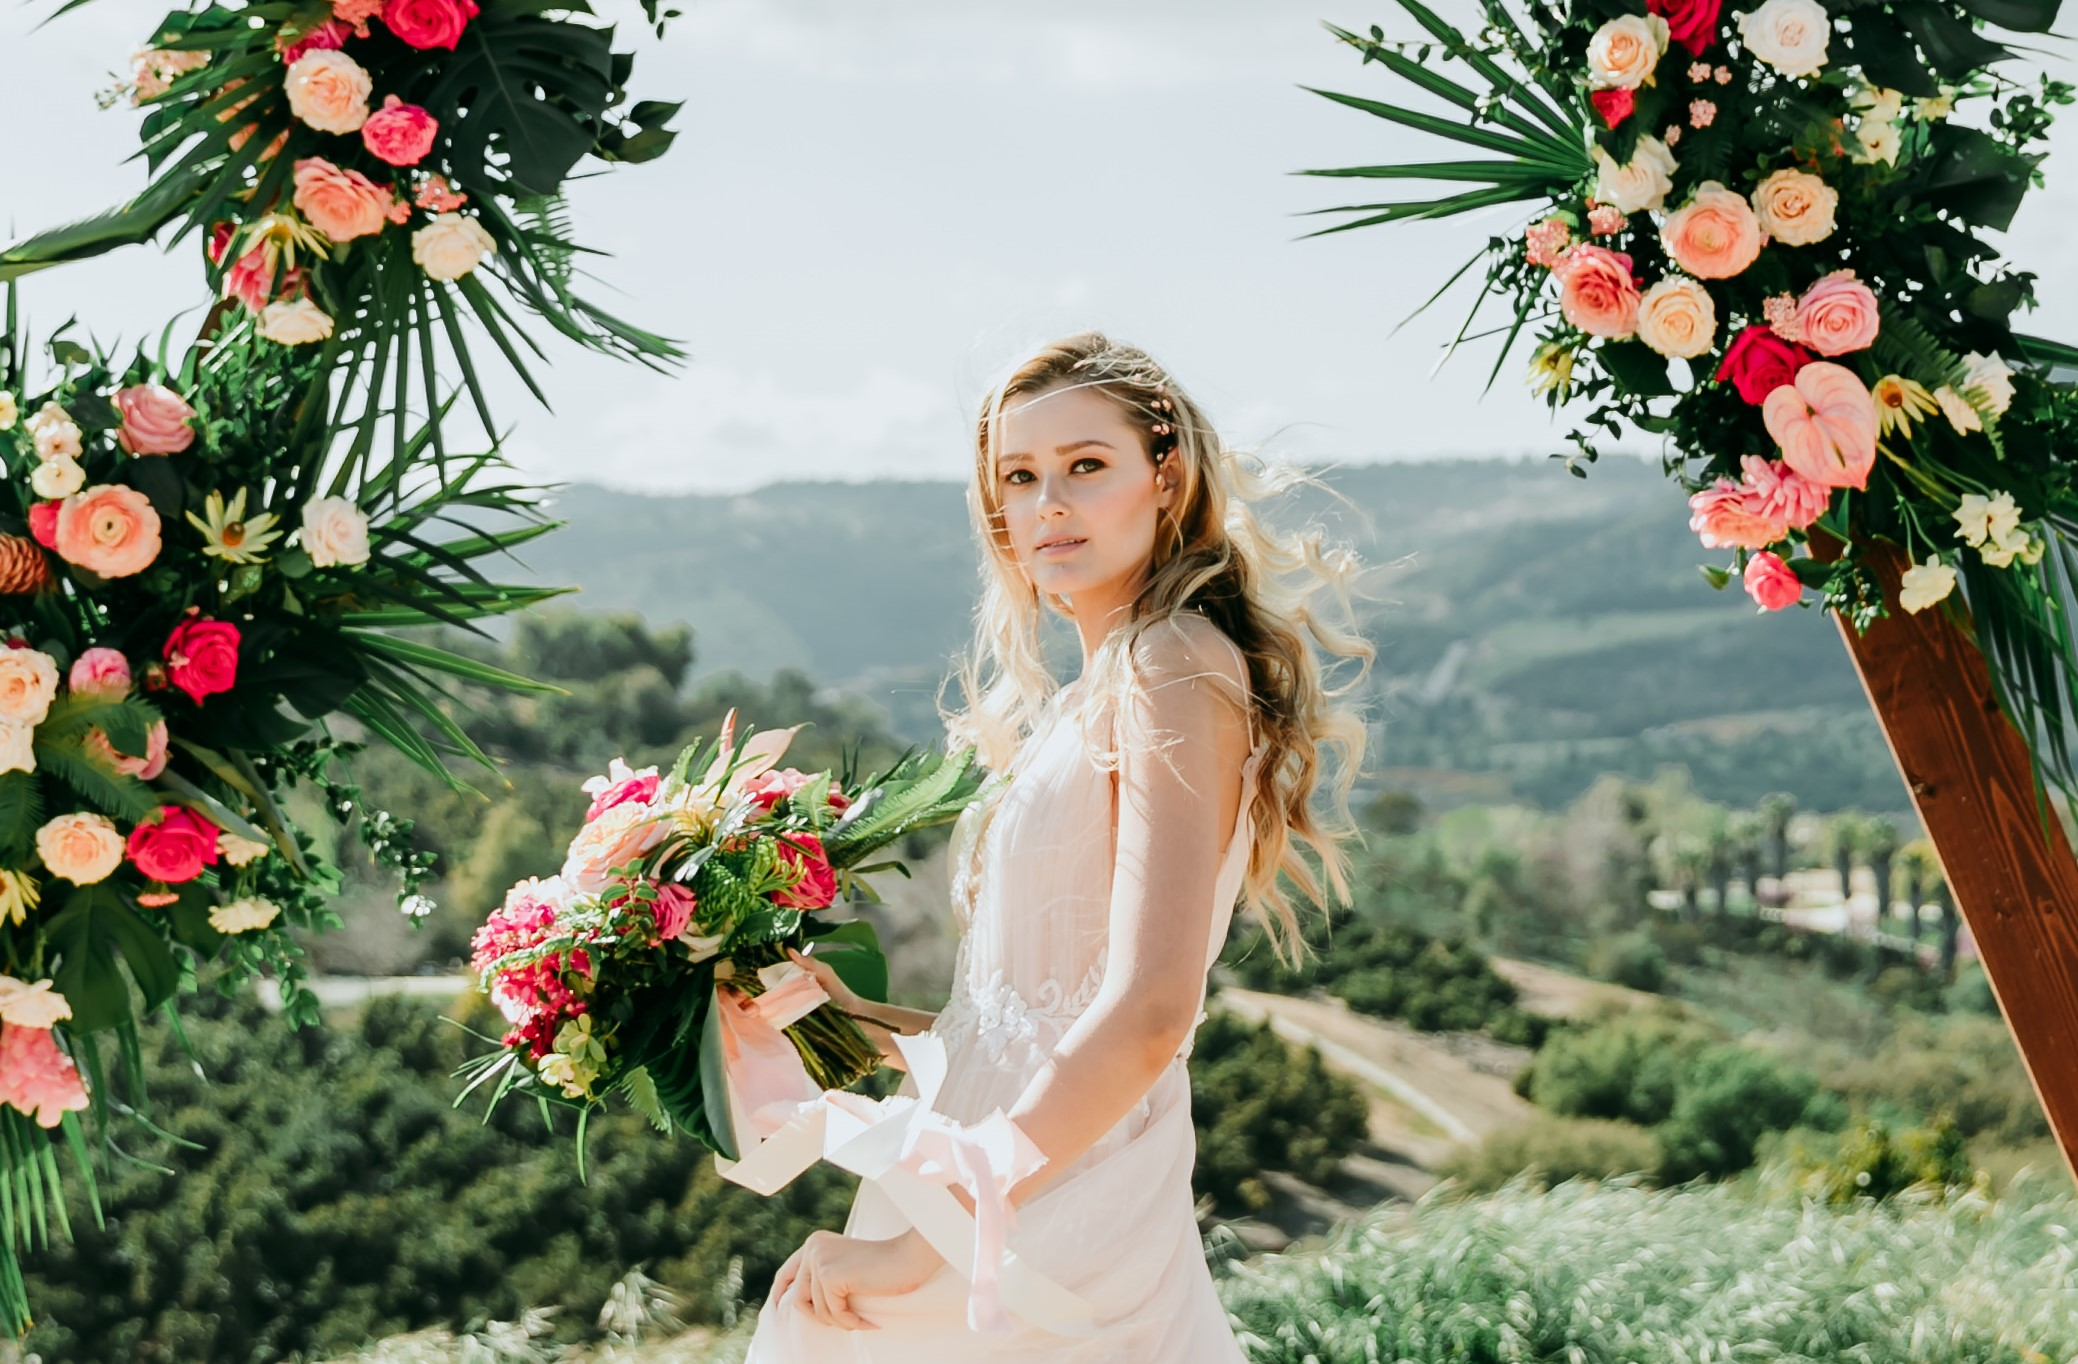 Weatherproof Summer Bridal Beauty Looks